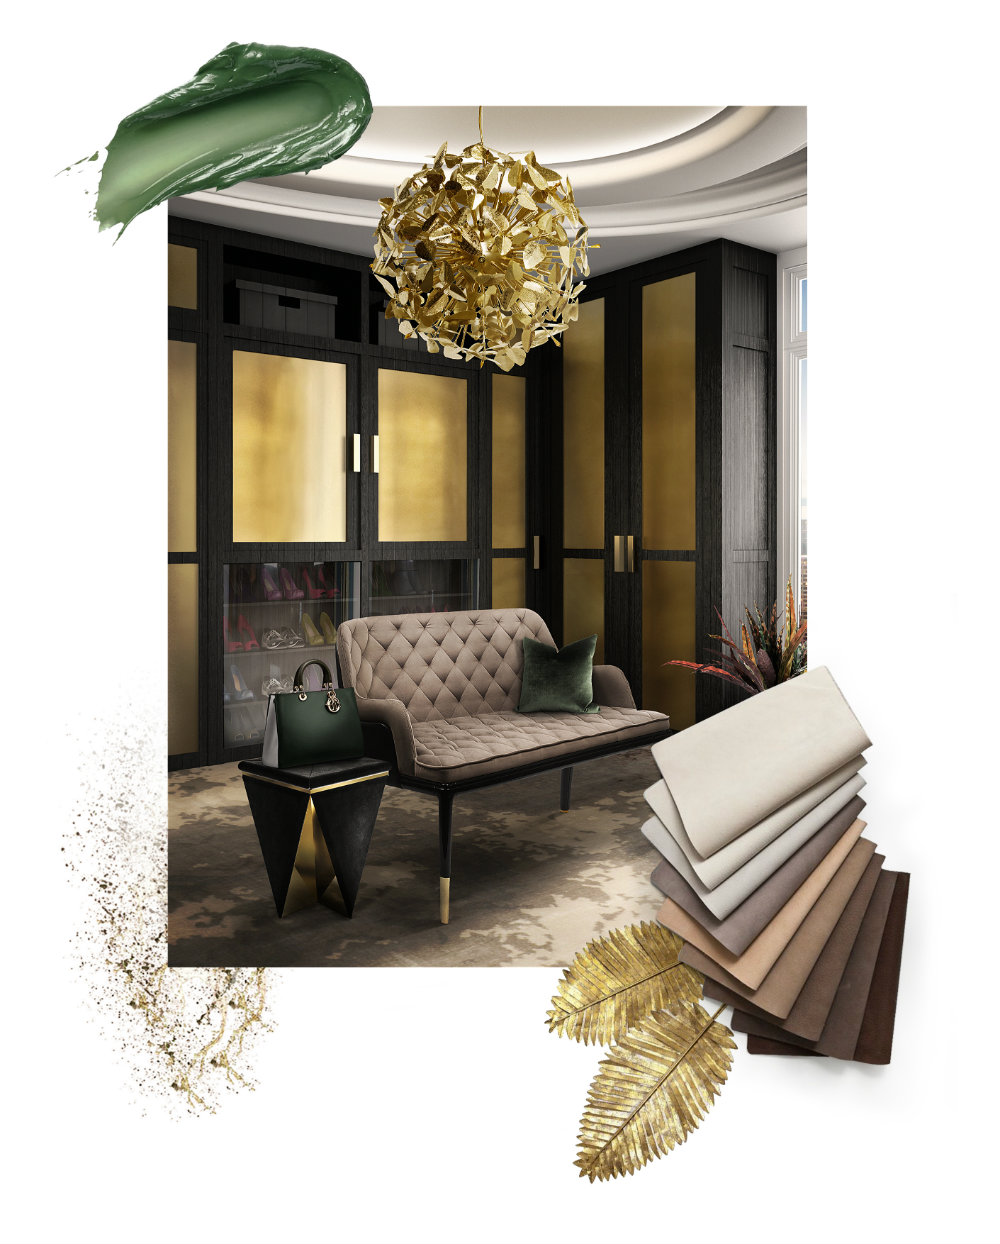 Timeless Fall Trends with LUXXU Home luxurious interiors Luxurious Interiors Inspired by Louis-Era French Design Timeless Fall Trends with LUXXU Home 01 luxurious interiors Luxurious Interiors Inspired by Louis-Era French Design Timeless Fall Trends with LUXXU Home 01